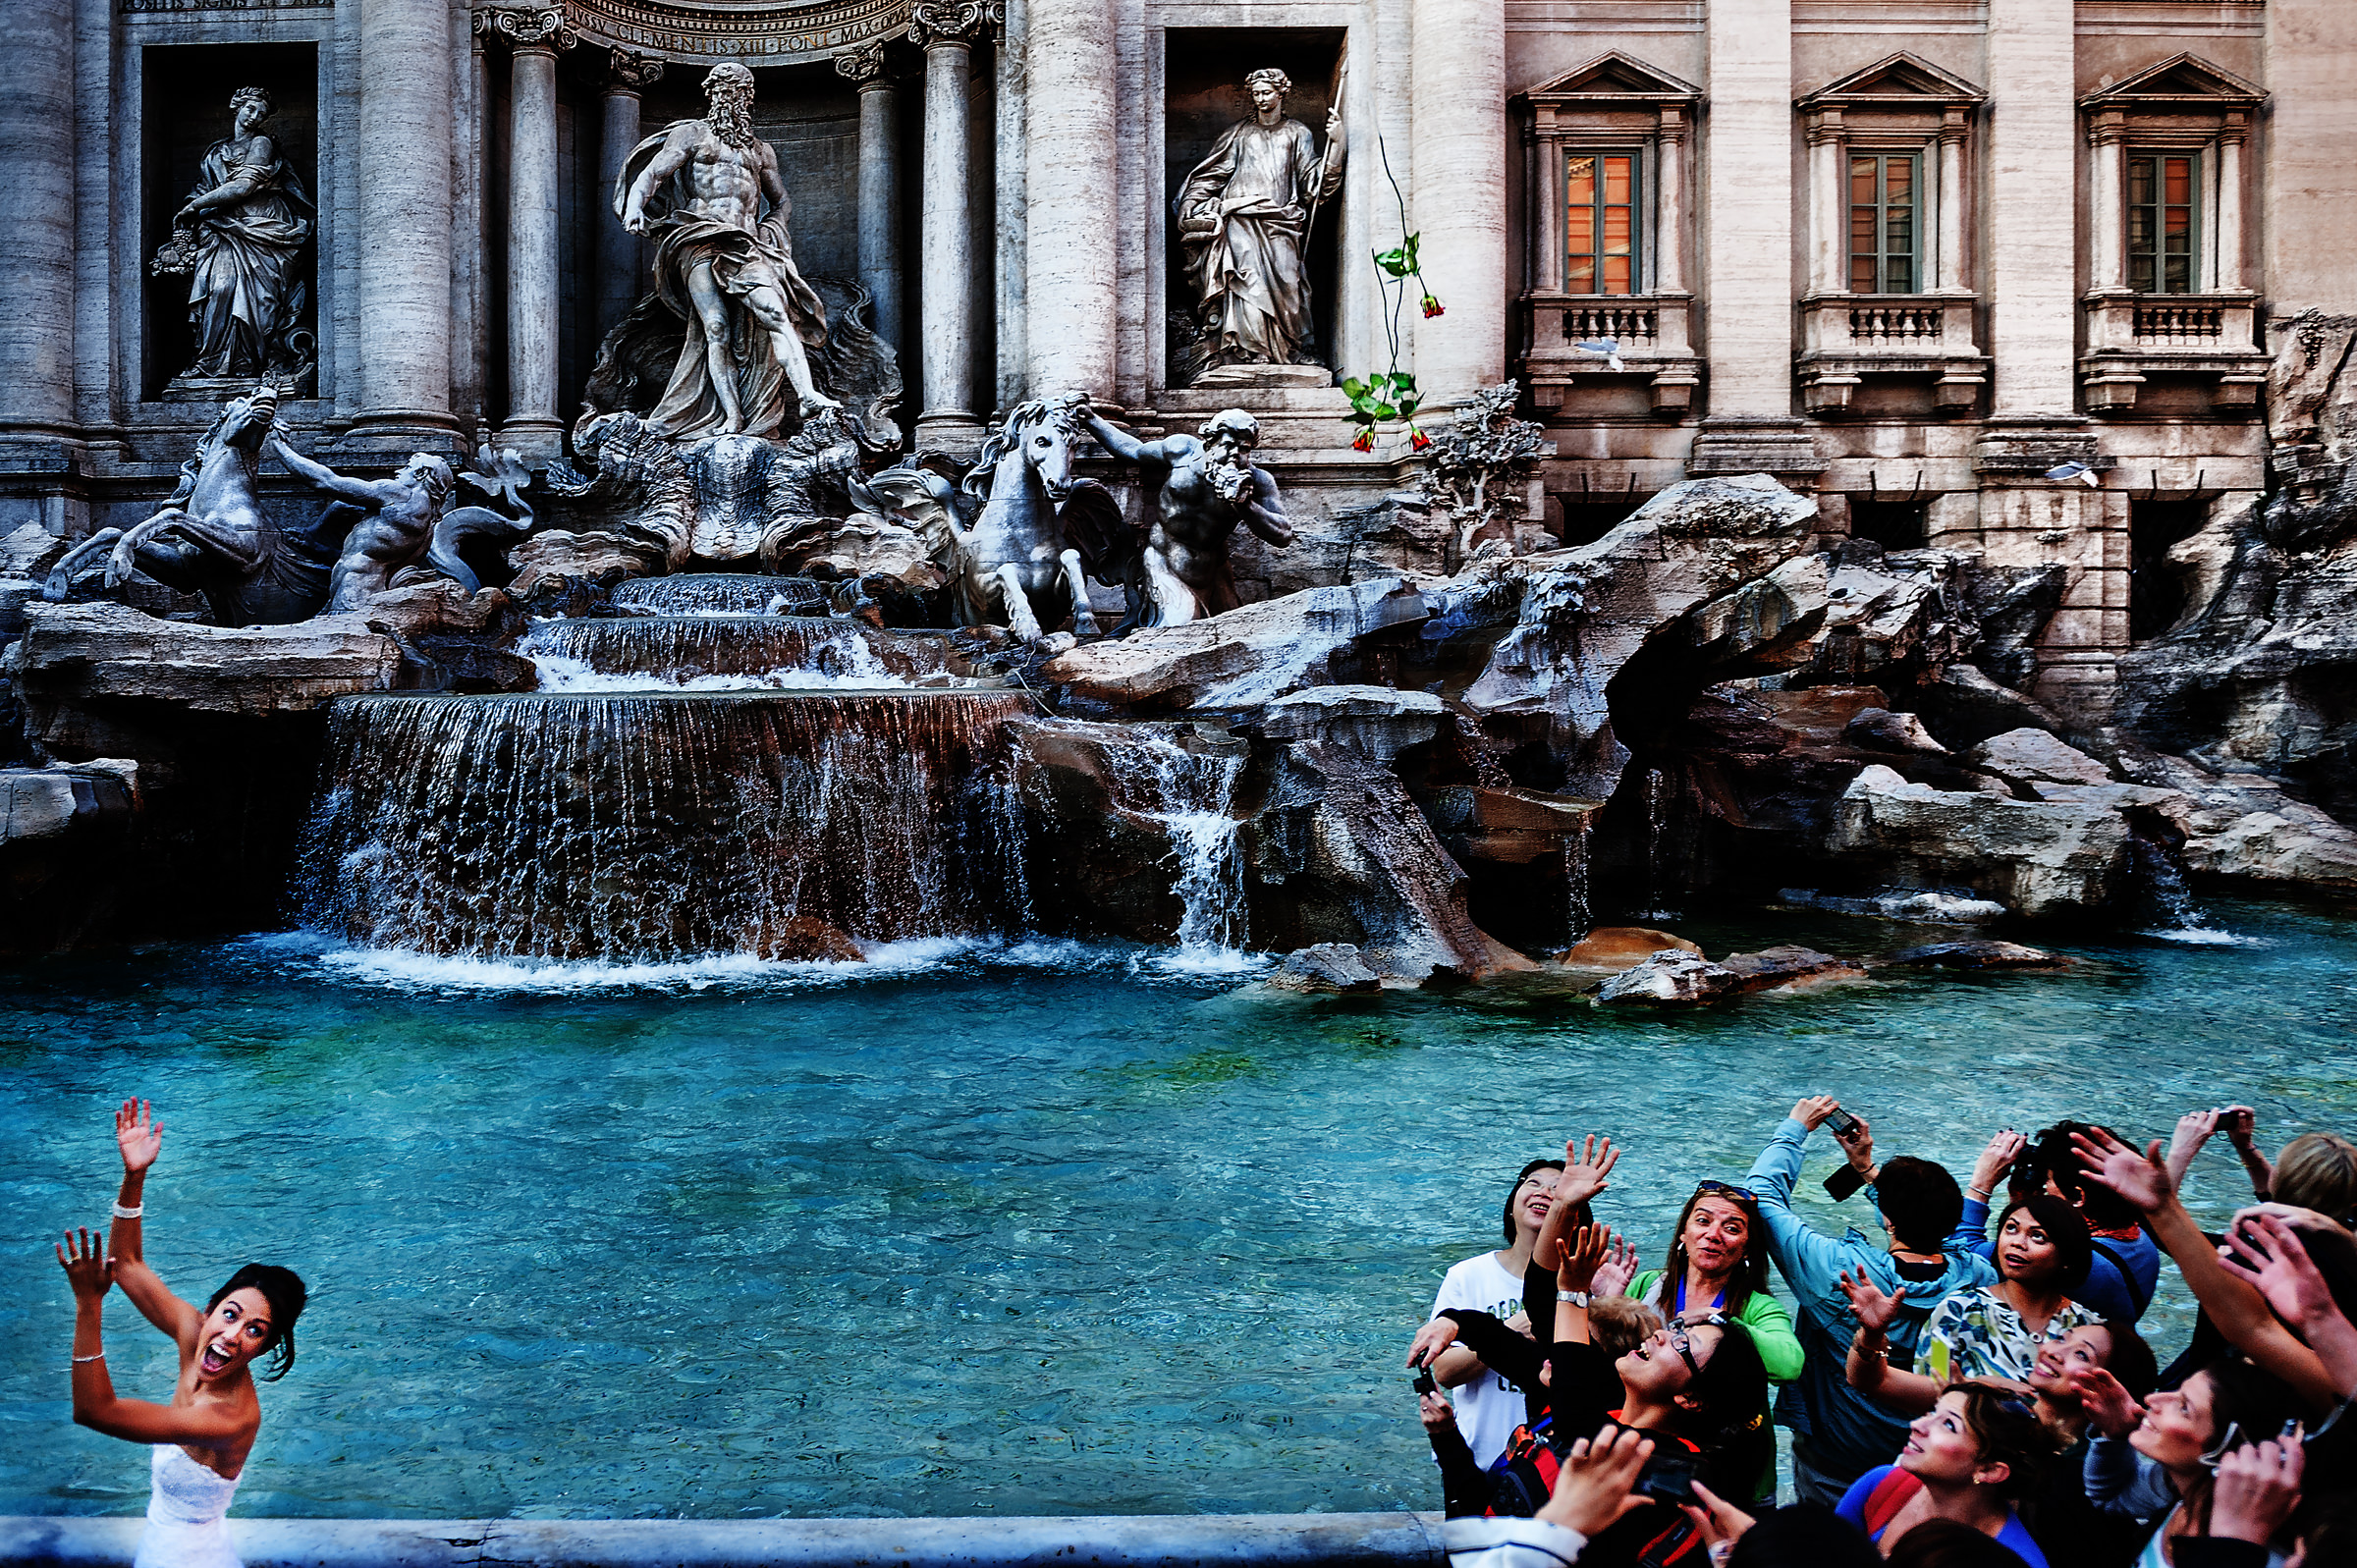 Bouquet toss at trevi fountain - photo by D2 Photography